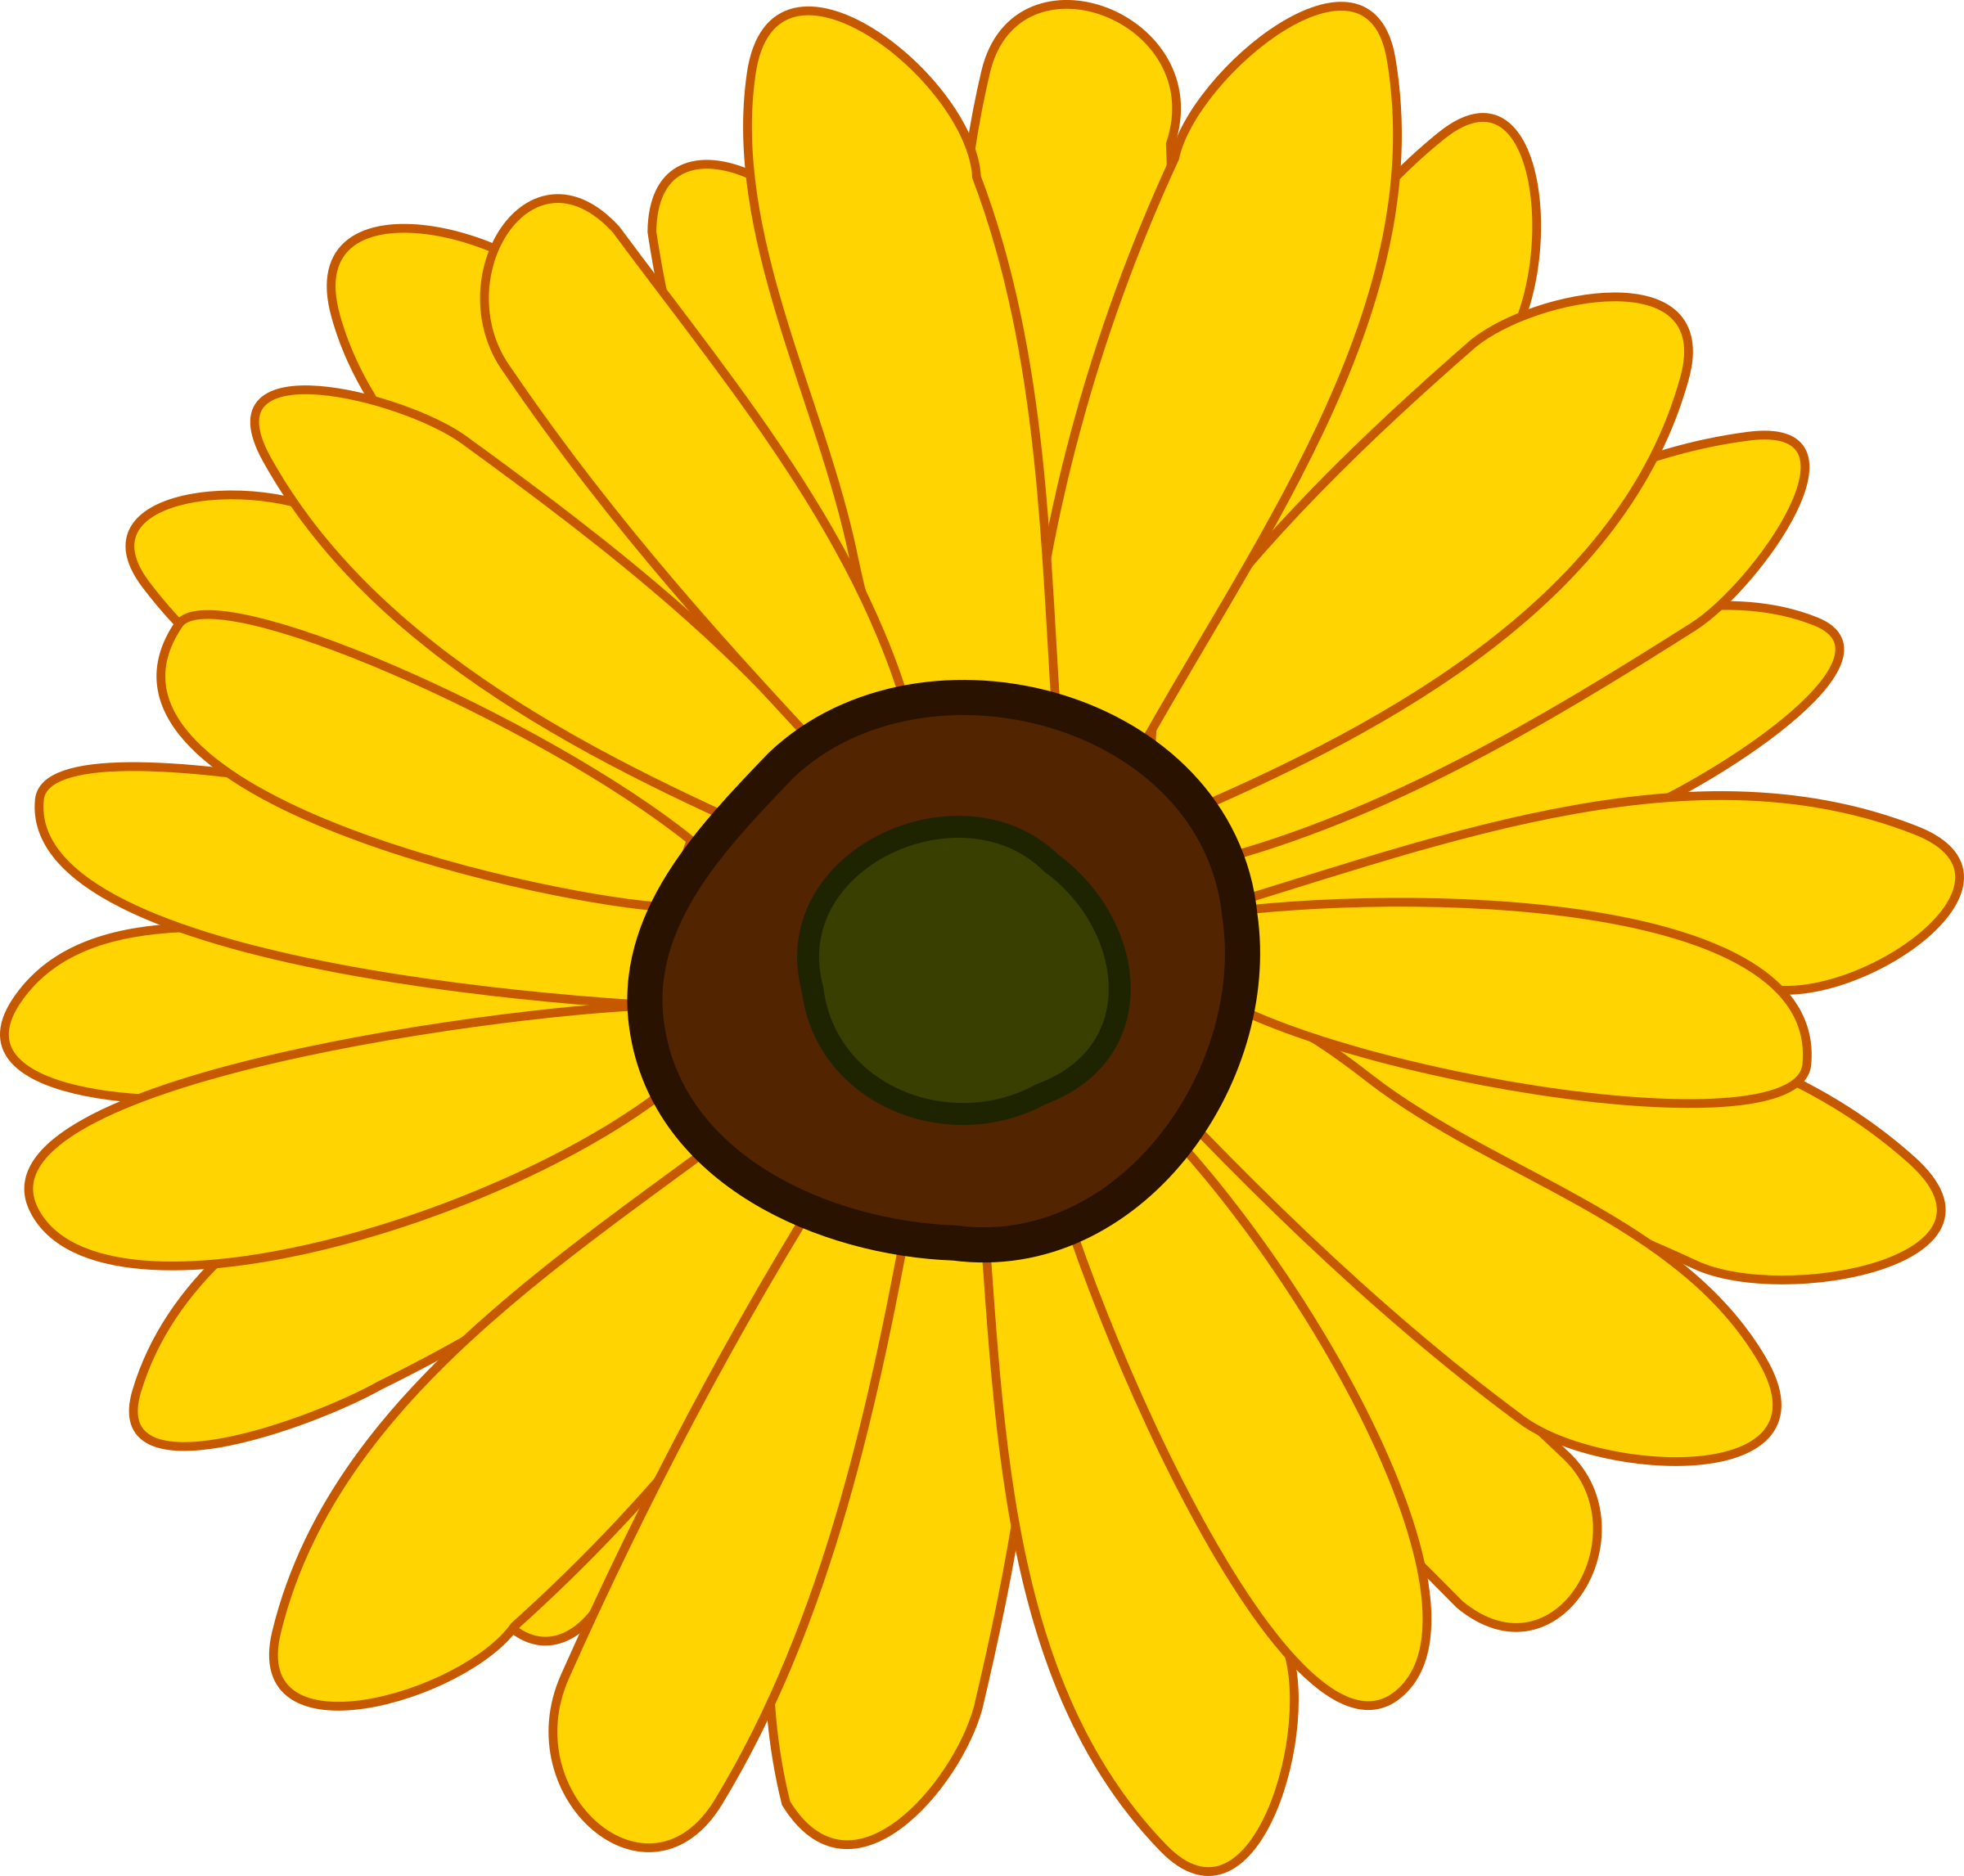 Sunflowers png pdf. Sunflower icons free and